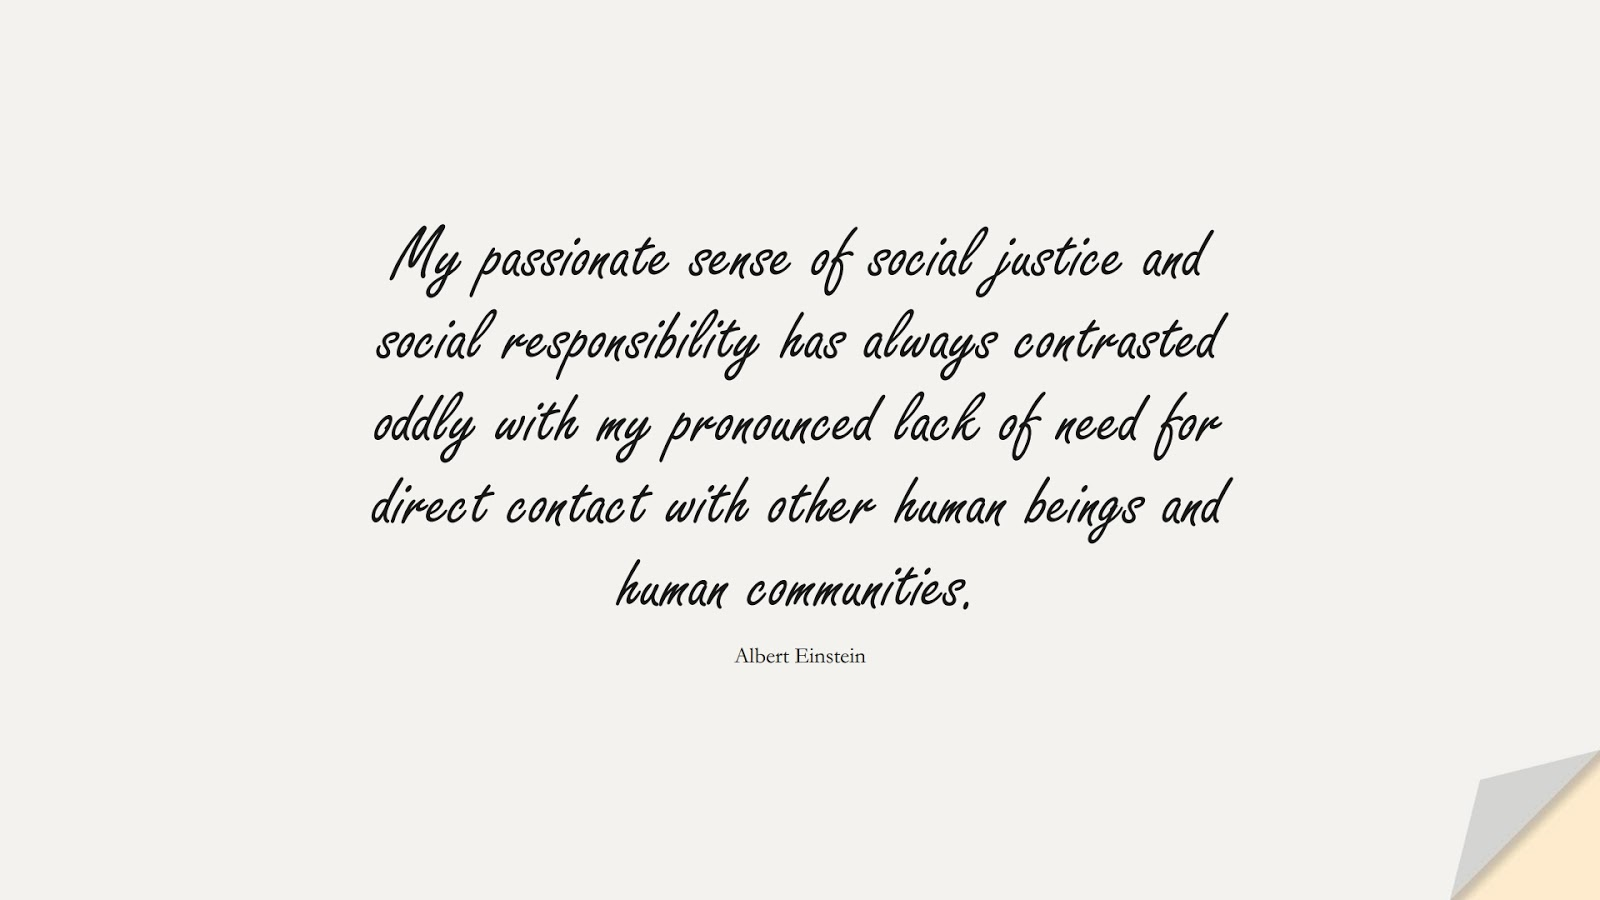 My passionate sense of social justice and social responsibility has always contrasted oddly with my pronounced lack of need for direct contact with other human beings and human communities. (Albert Einstein);  #HumanityQuotes